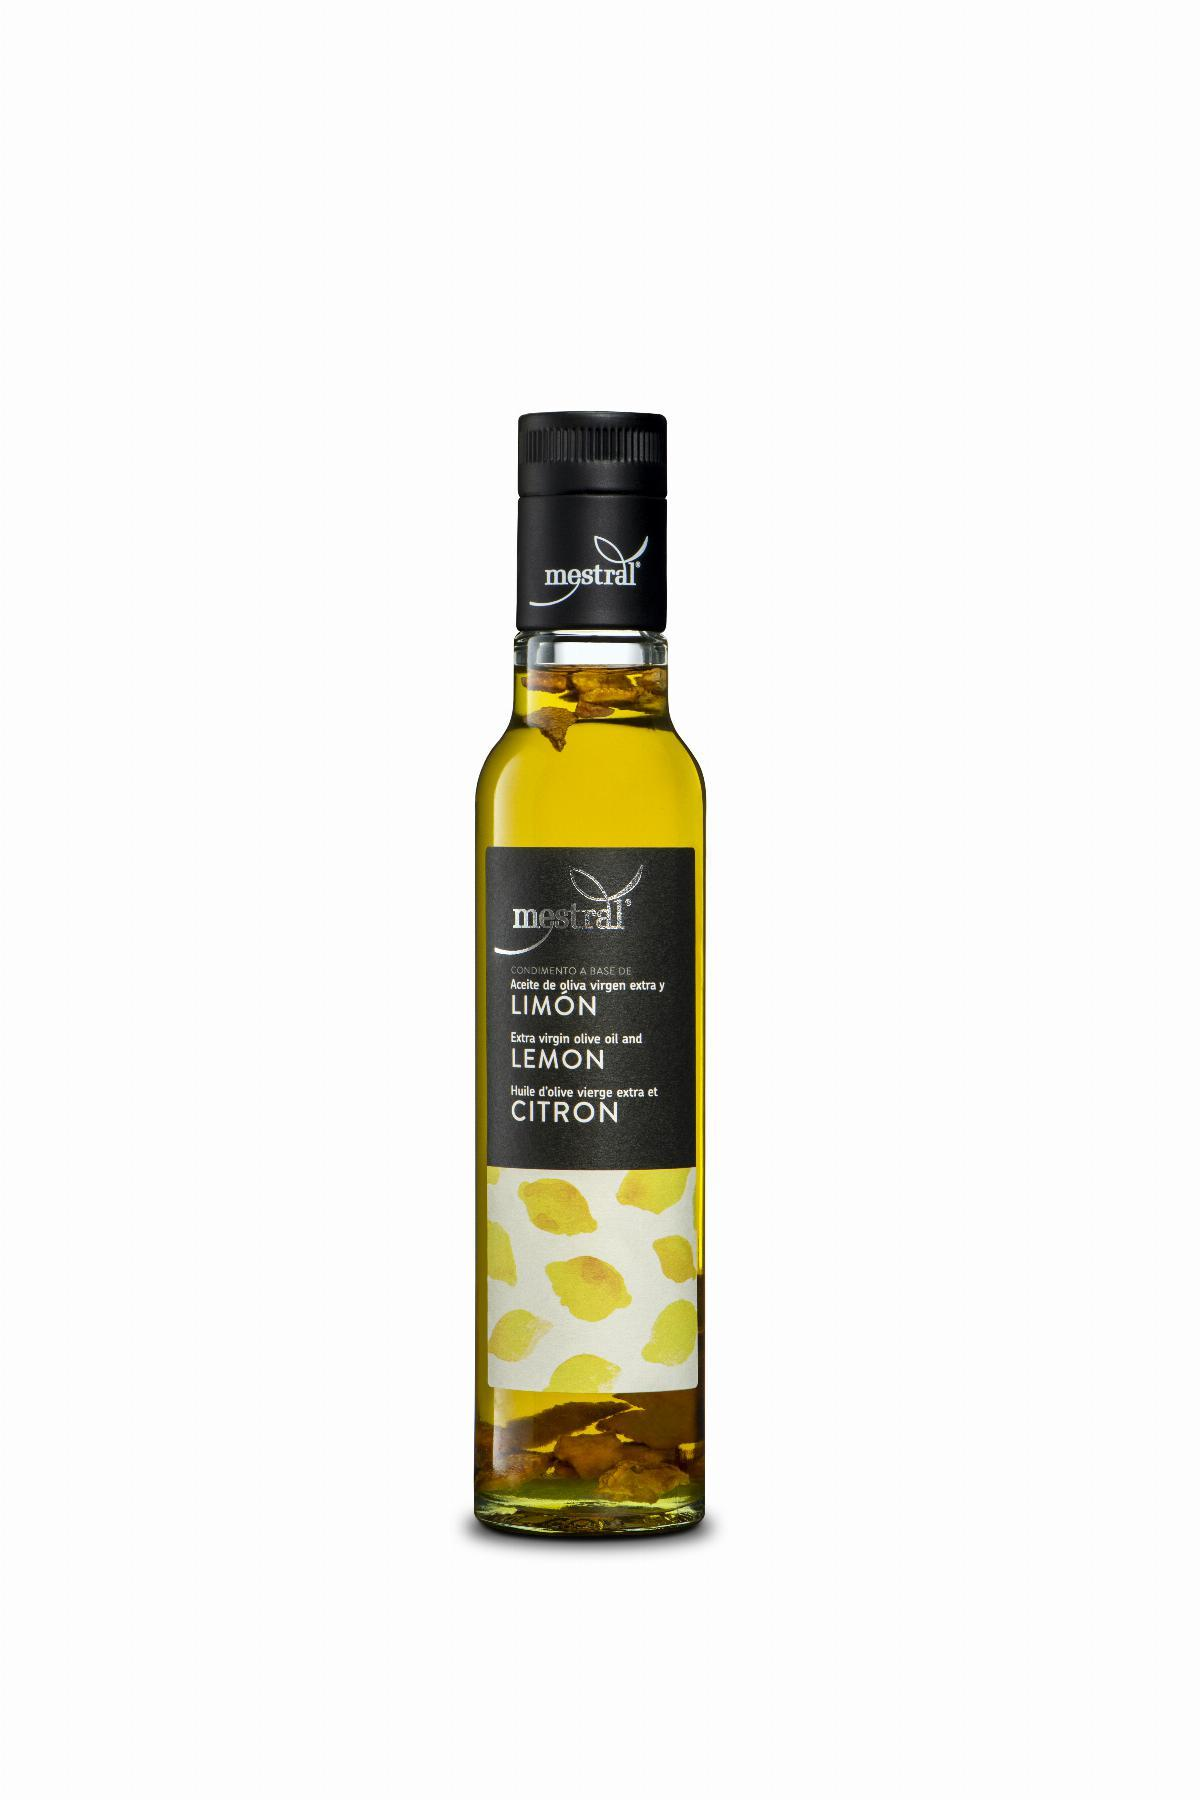 Mestral Extra Virgin Olive Oil and Lemon, bot. 250ml